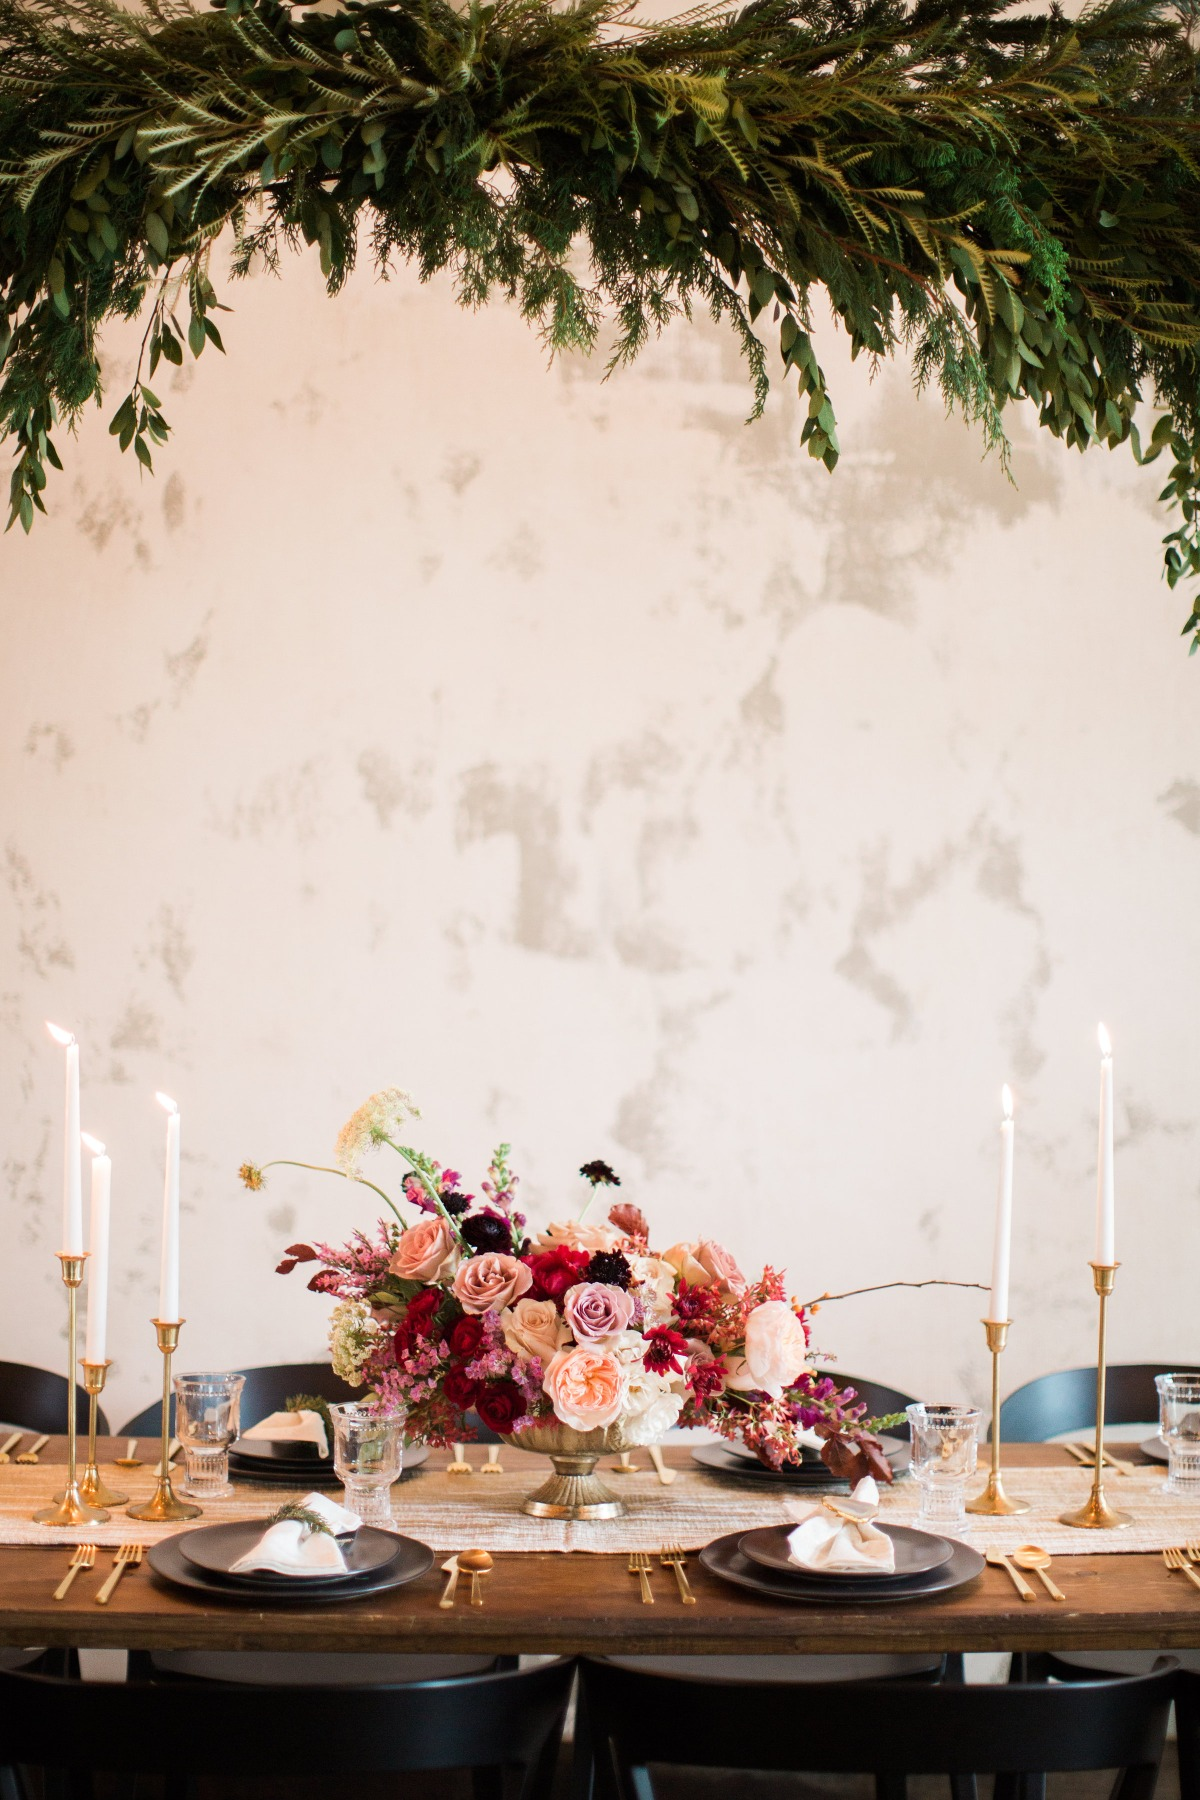 Blush and red wedding centerpiece